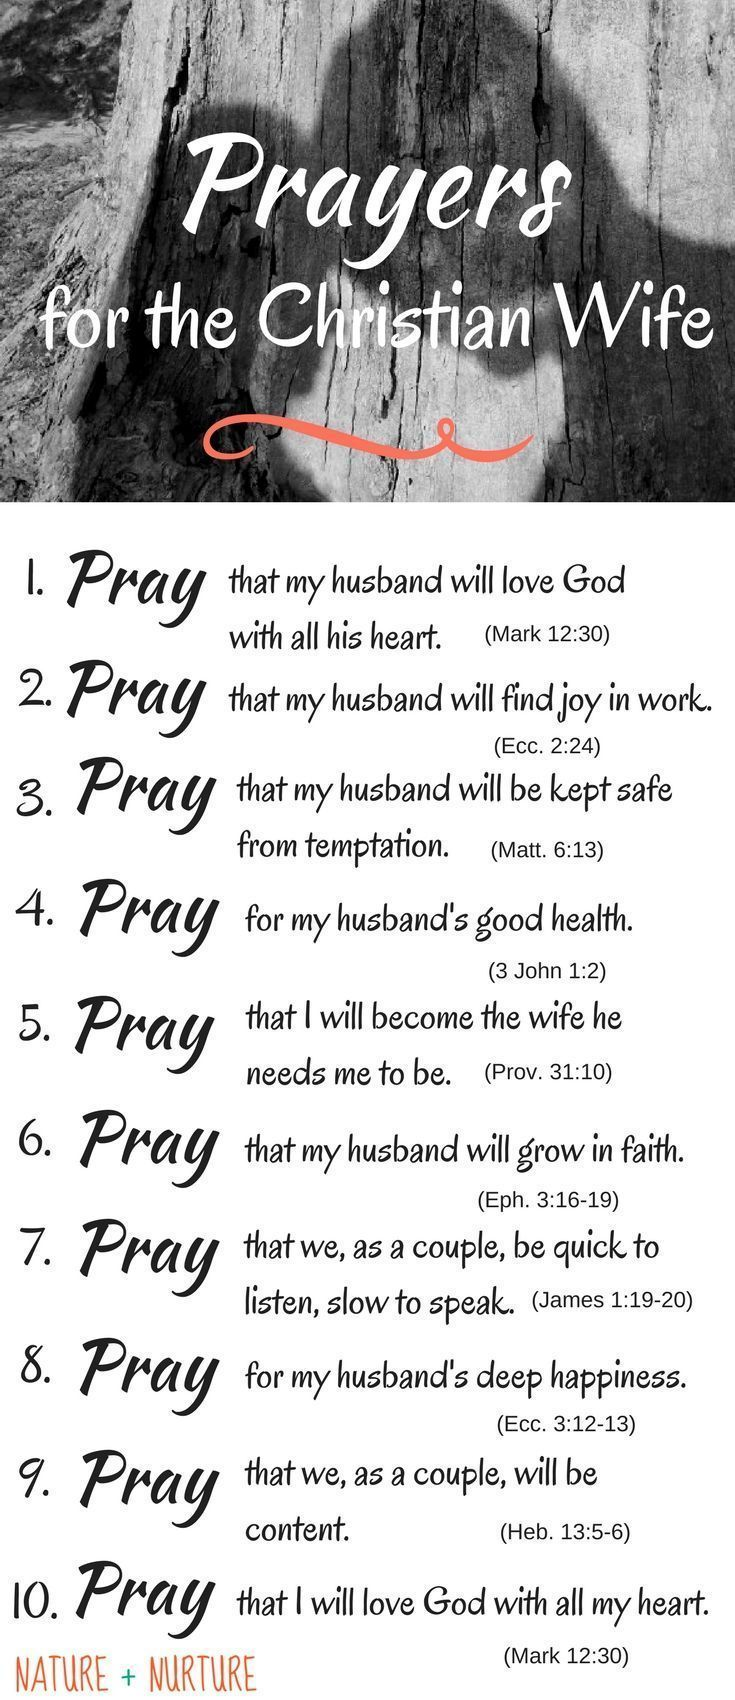 Praying for Your Husband: 10 Easy Marriage Prayers for the Christian Spouse